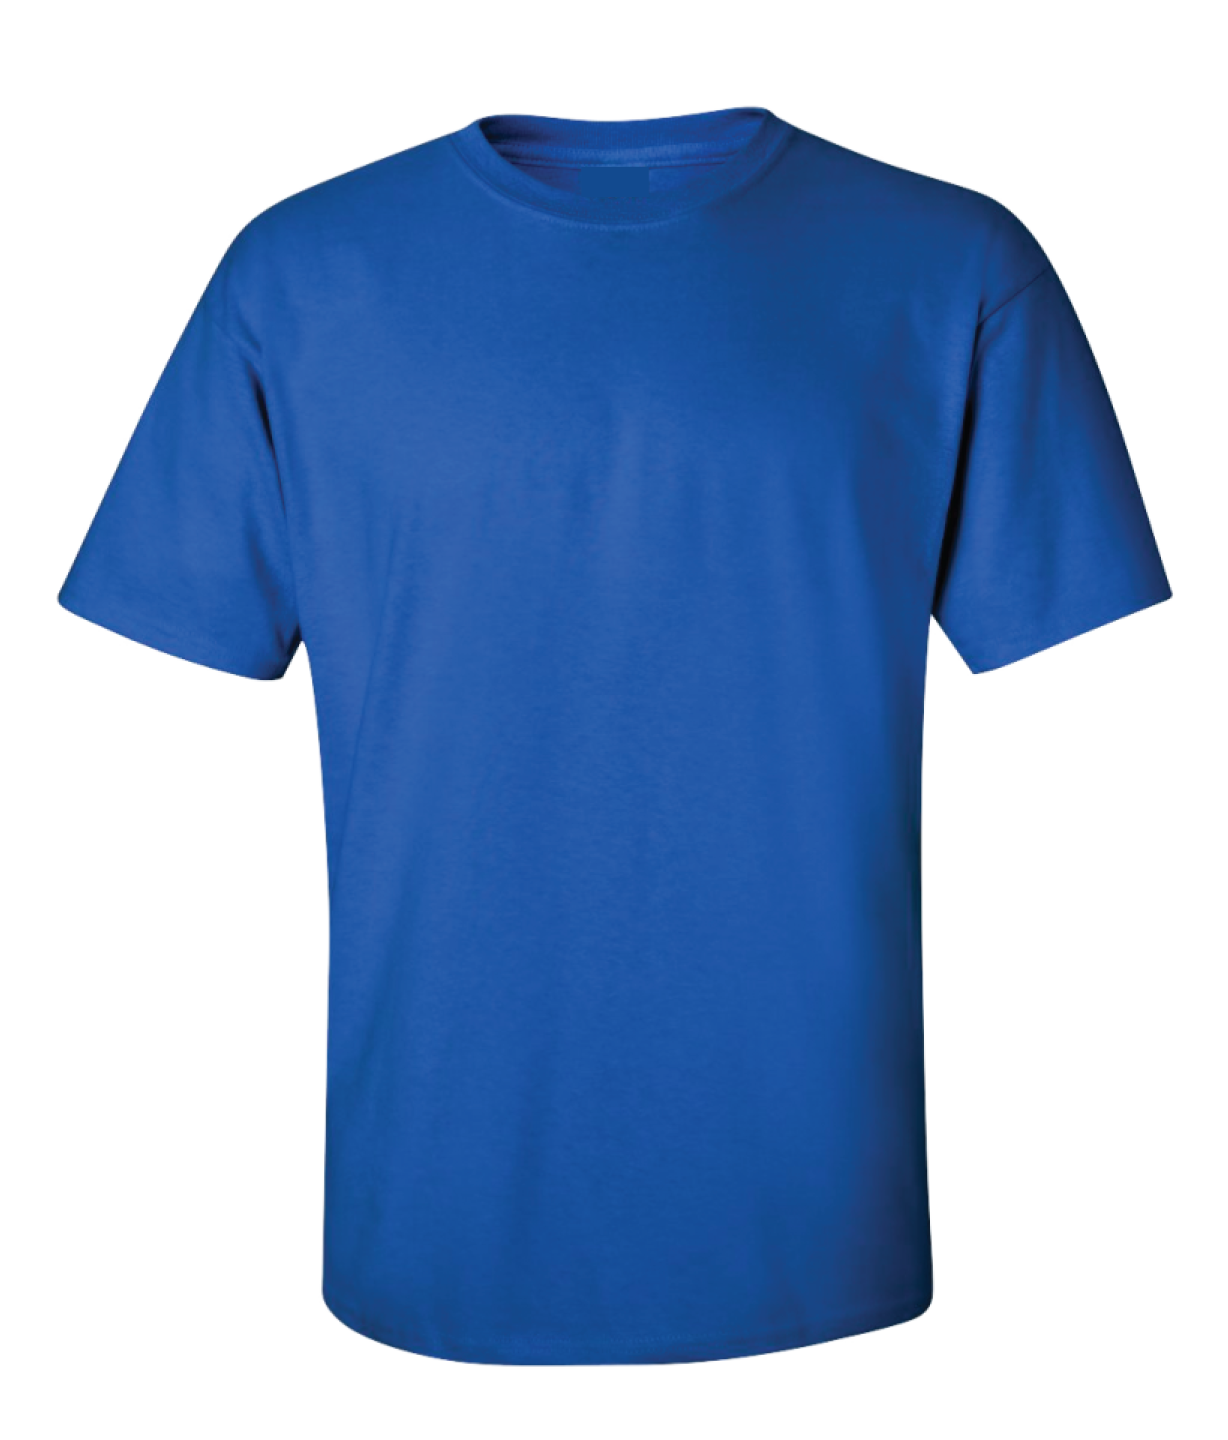 BEOK Clothing - Blue t -shirt